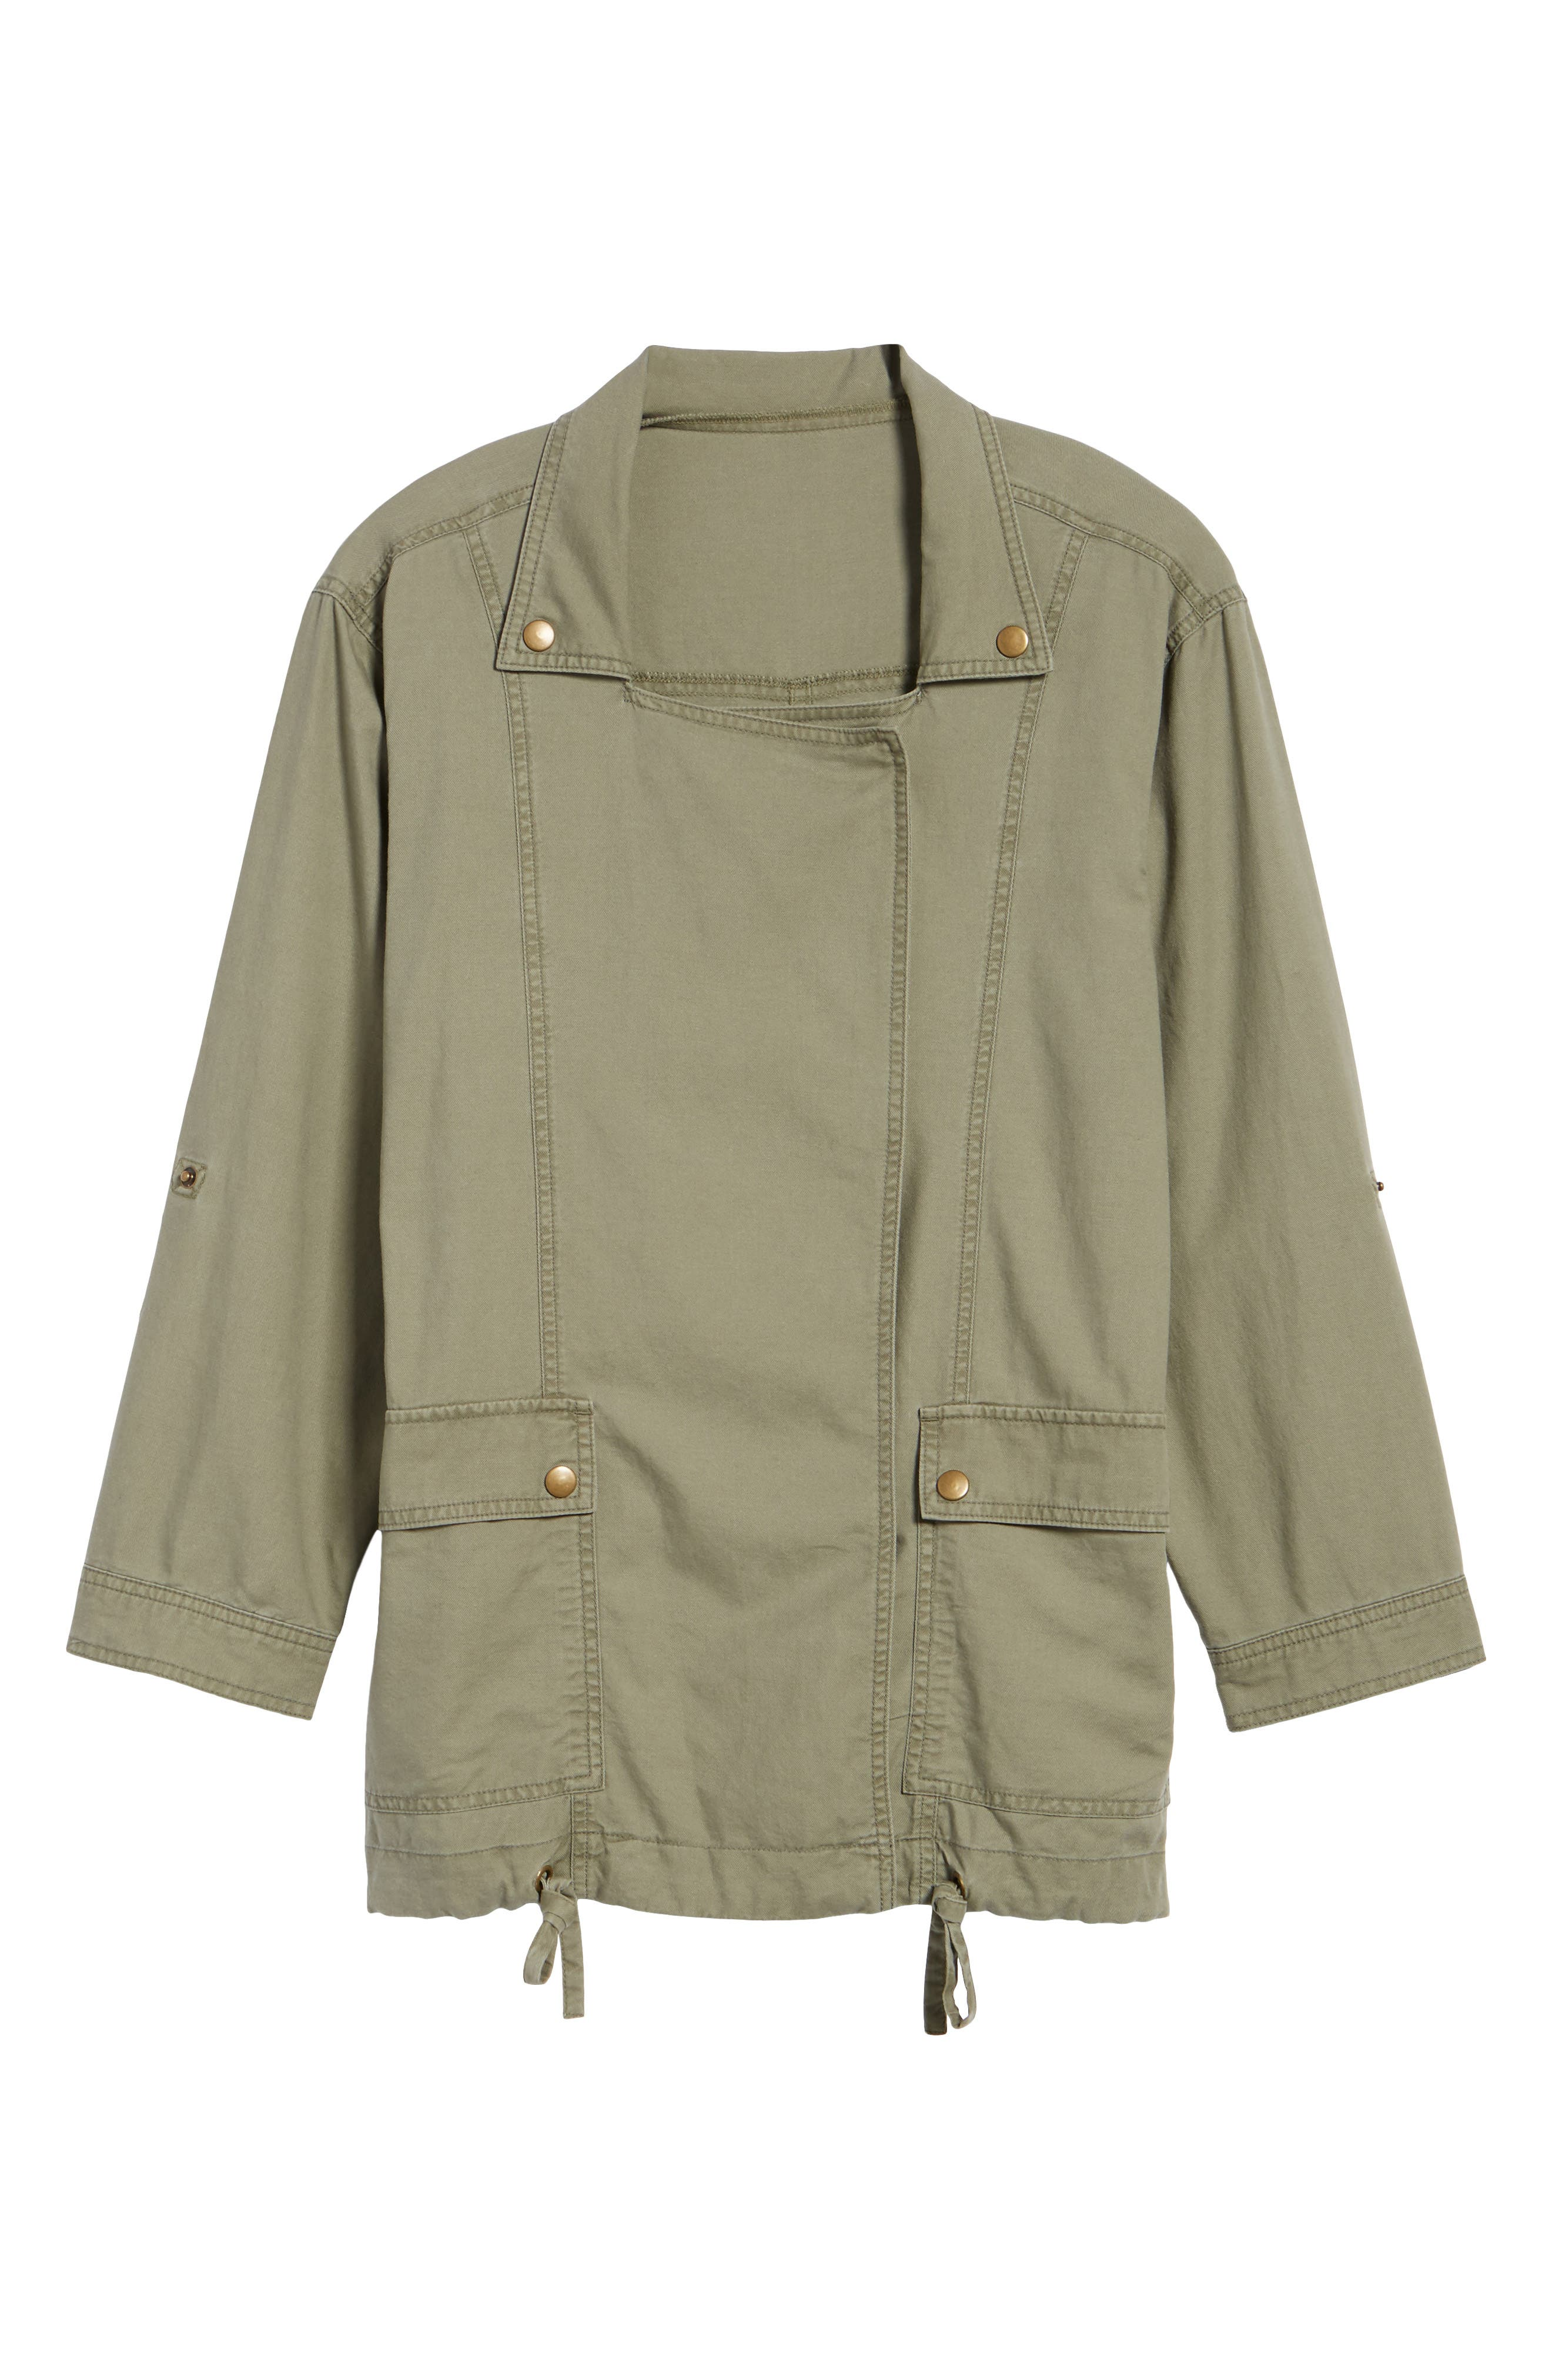 Roll Sleeve Utility Jacket,                             Main thumbnail 1, color,                             Olive